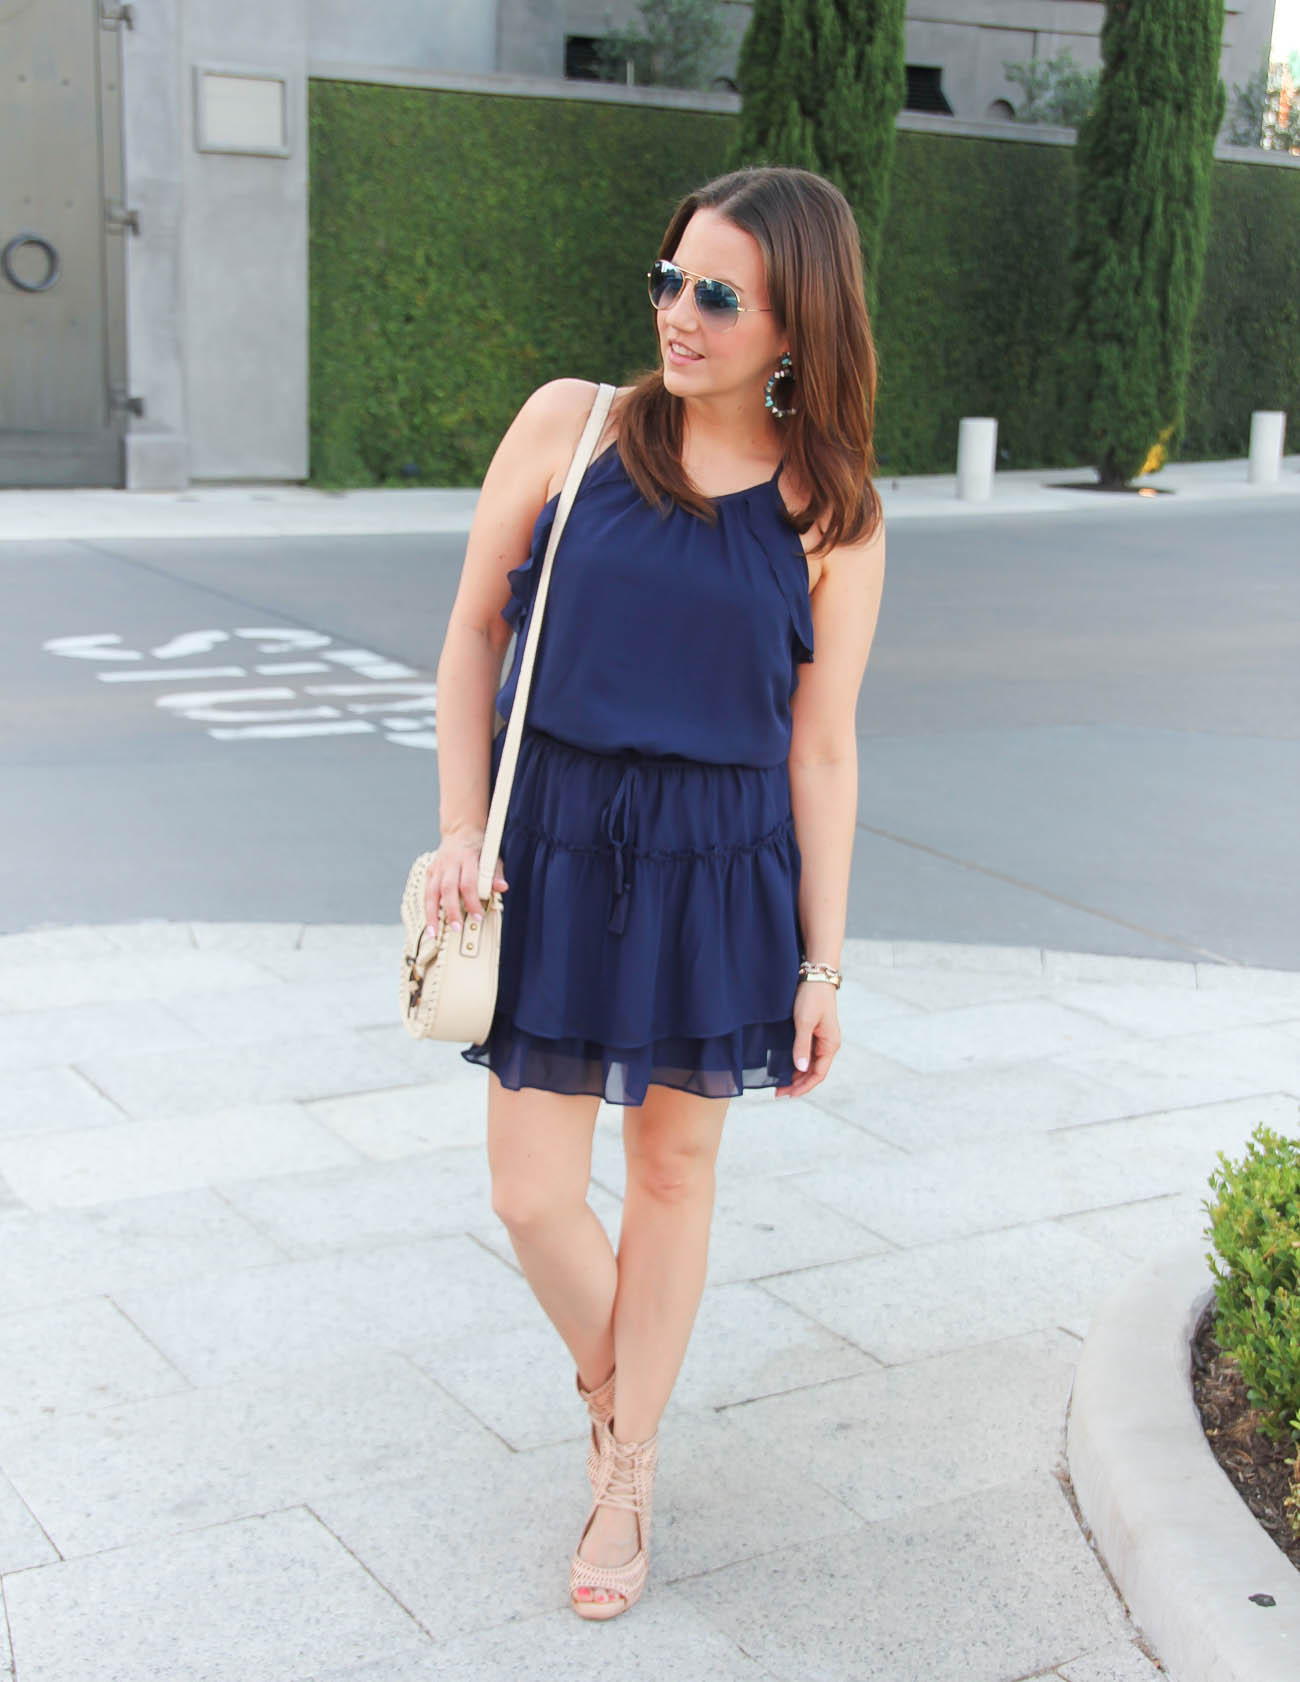 a-summer-outfit-navy-dress-laceup-wedges